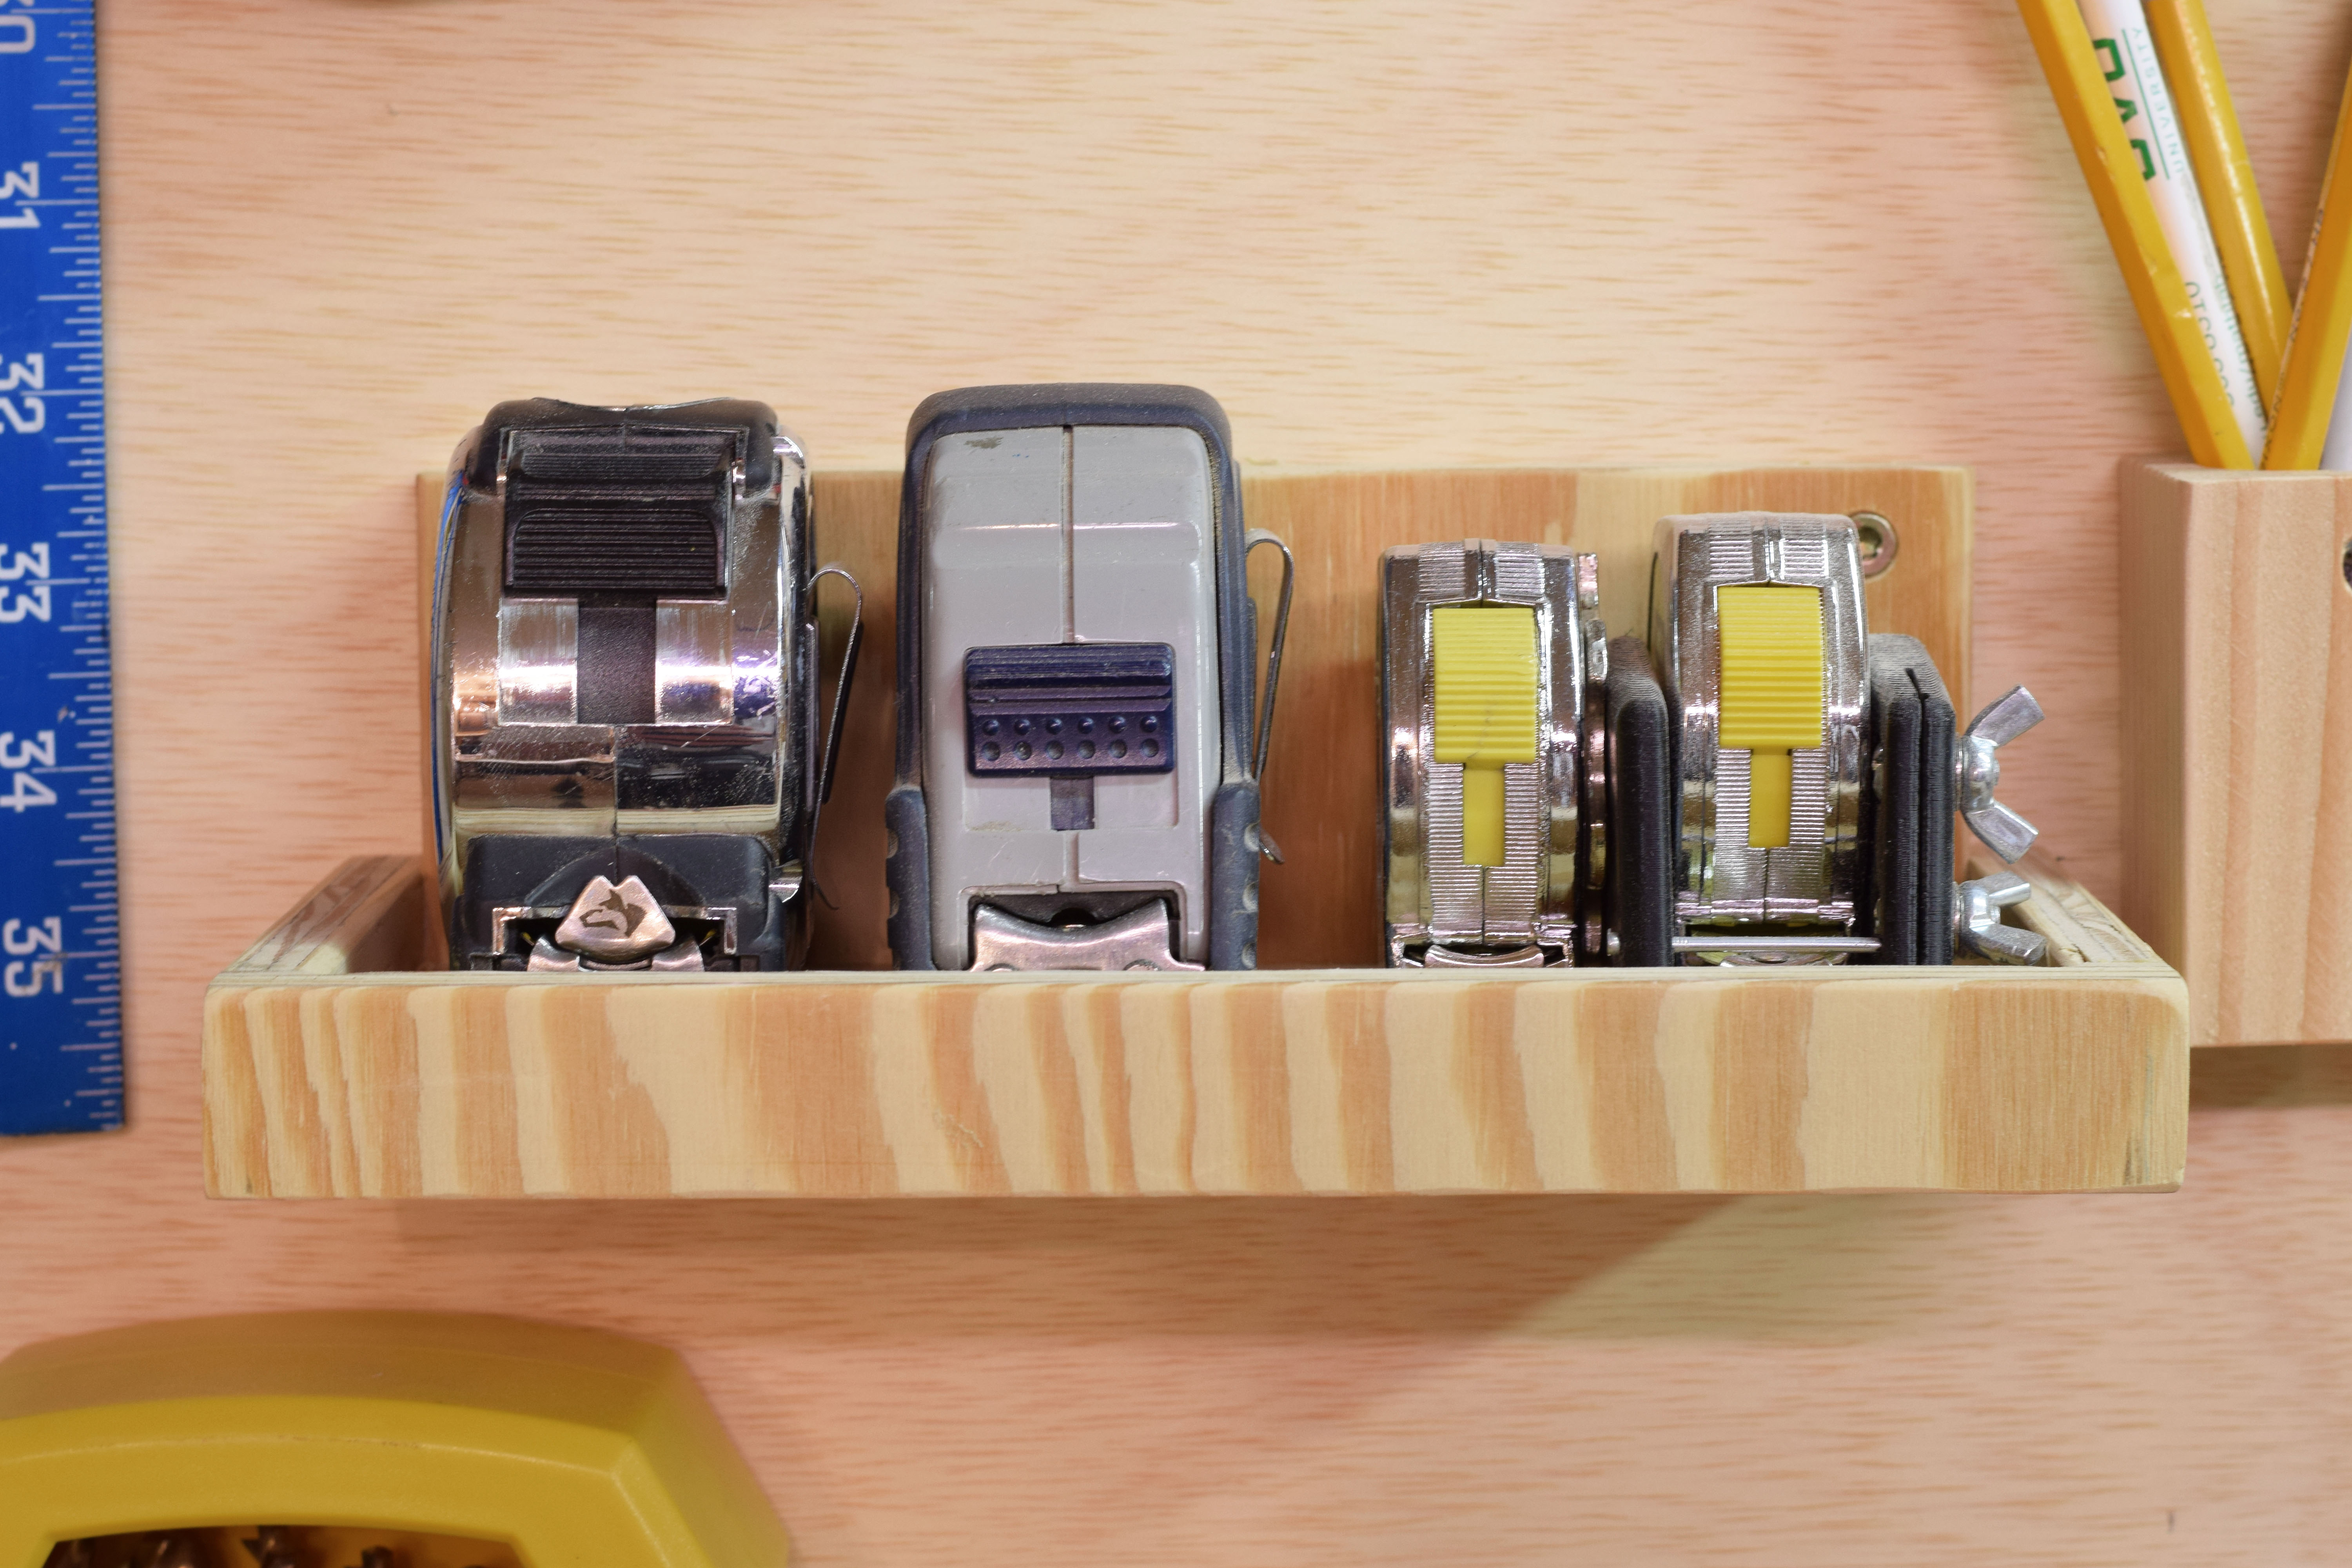 Picture of Tape Measure Shelf